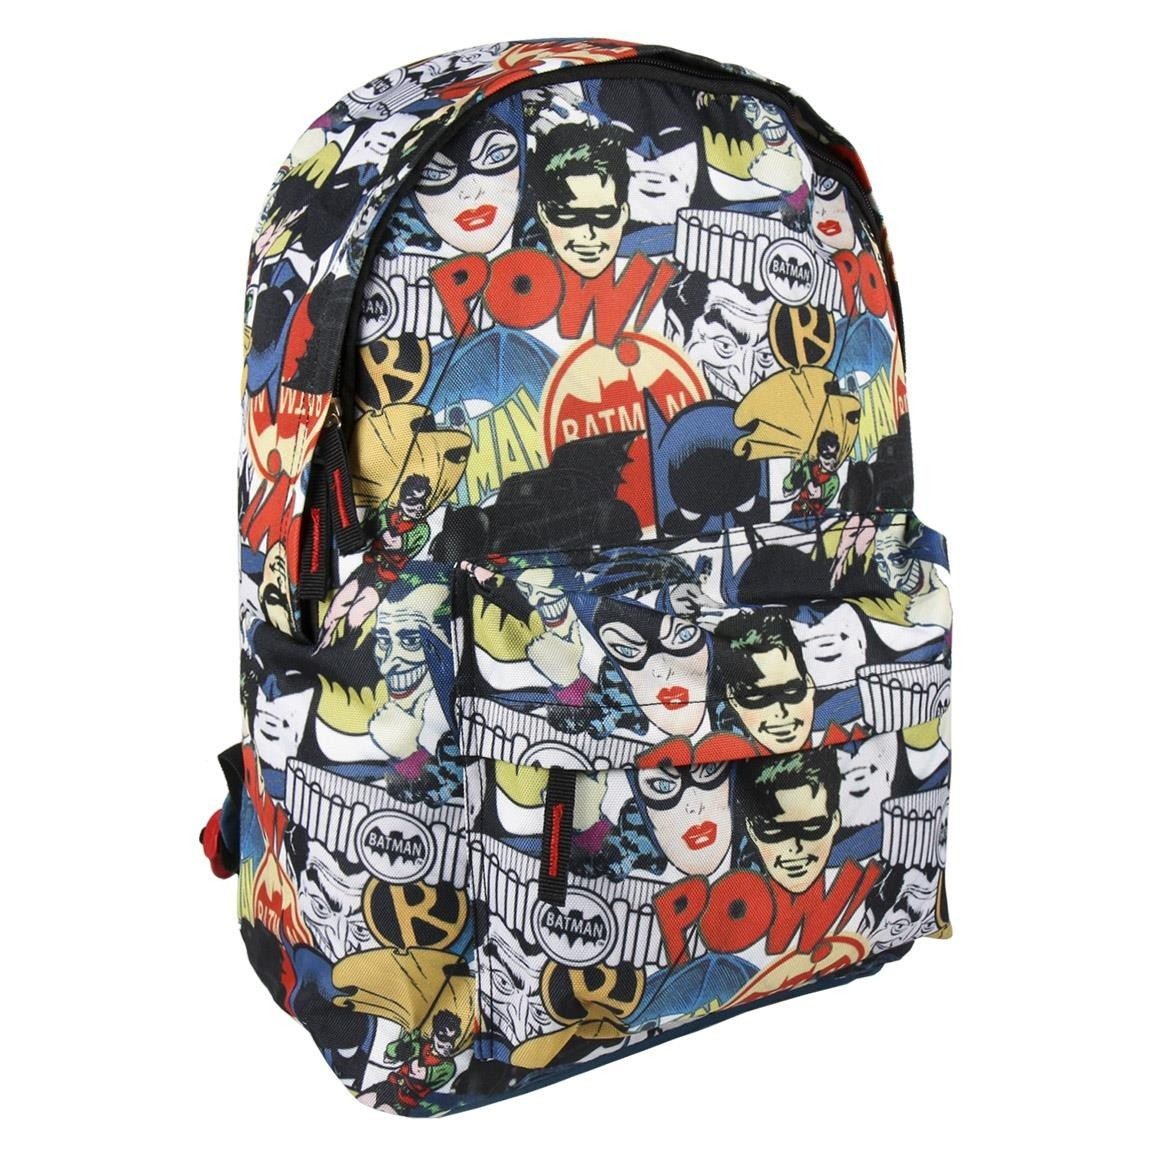 Batman Backpack | High School Batman